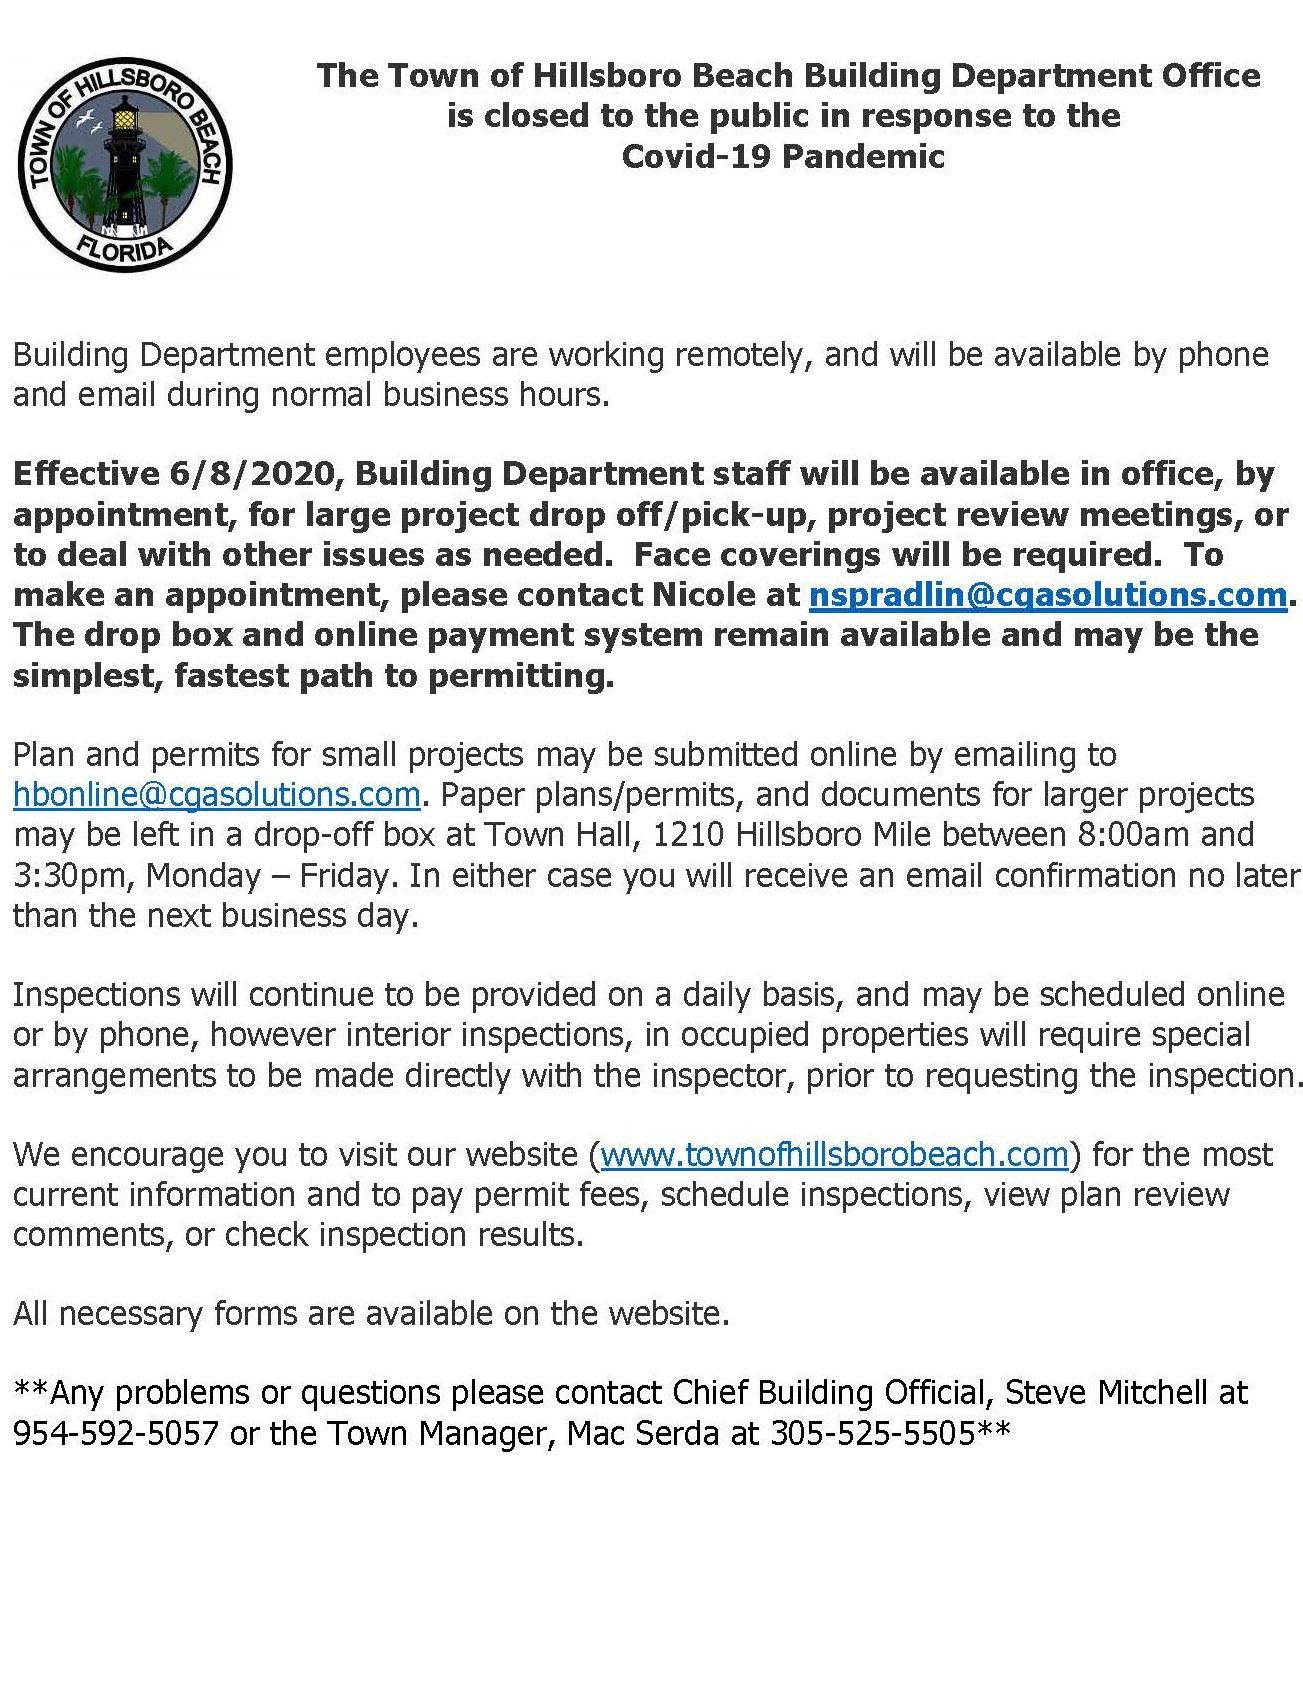 EFFECTIVE 6/8/2020, BUILDING DEPARTMENT STAFF WILL BE AVAILABLE IN OFFICE, BY APPOINTMENT, FOR LARGE Opens in new window